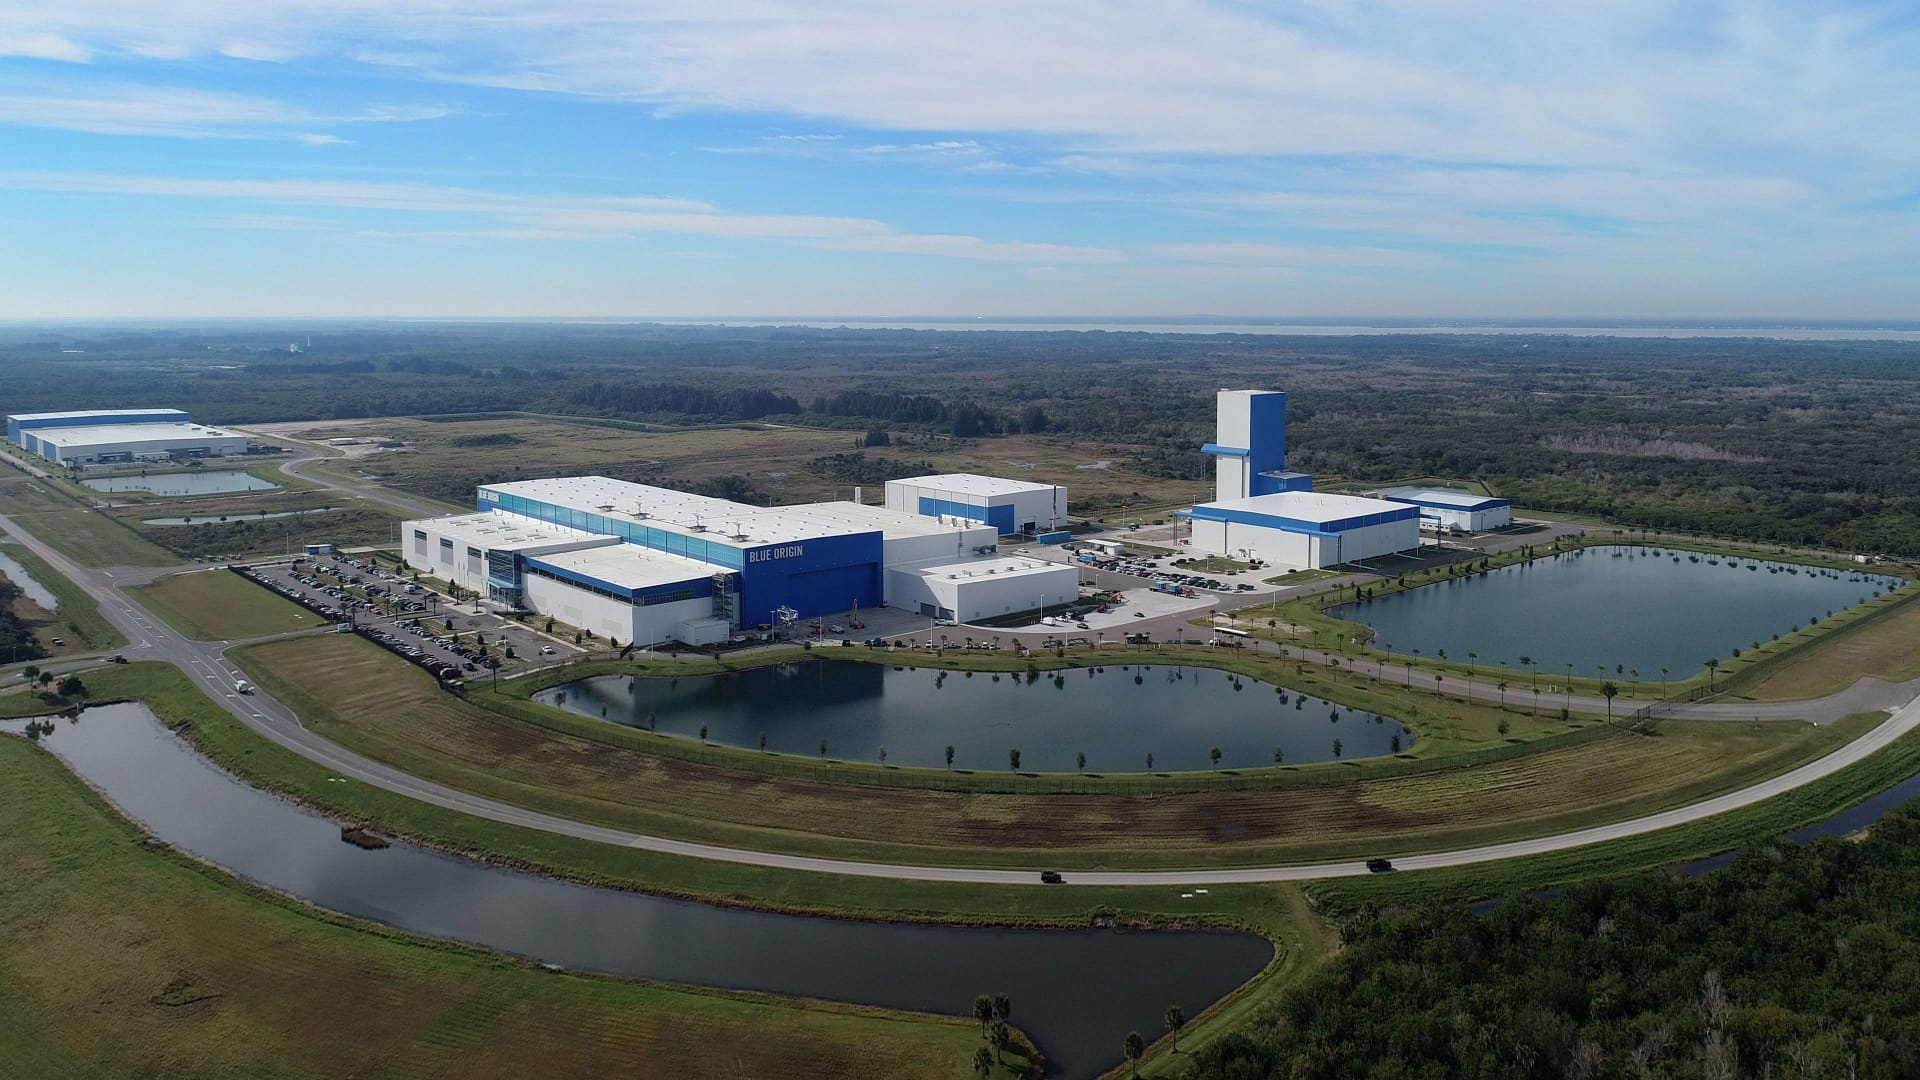 An aerial view of the company's manufacturing and testing facility in Florida.